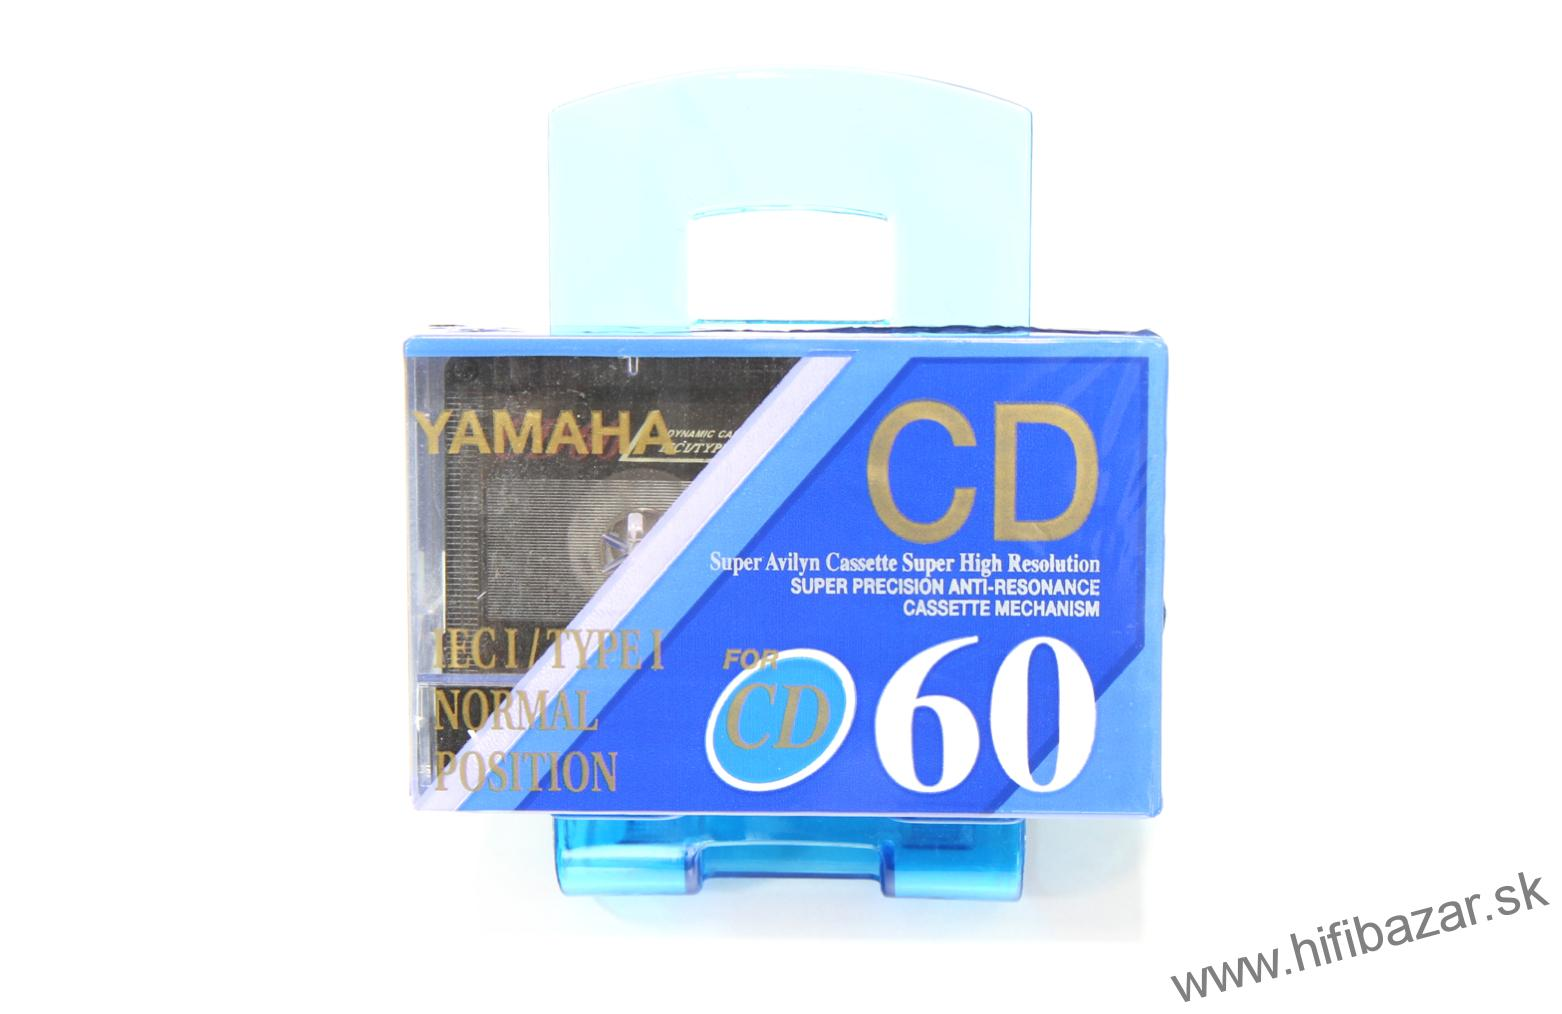 YAMAHA CD-60 Position Normal